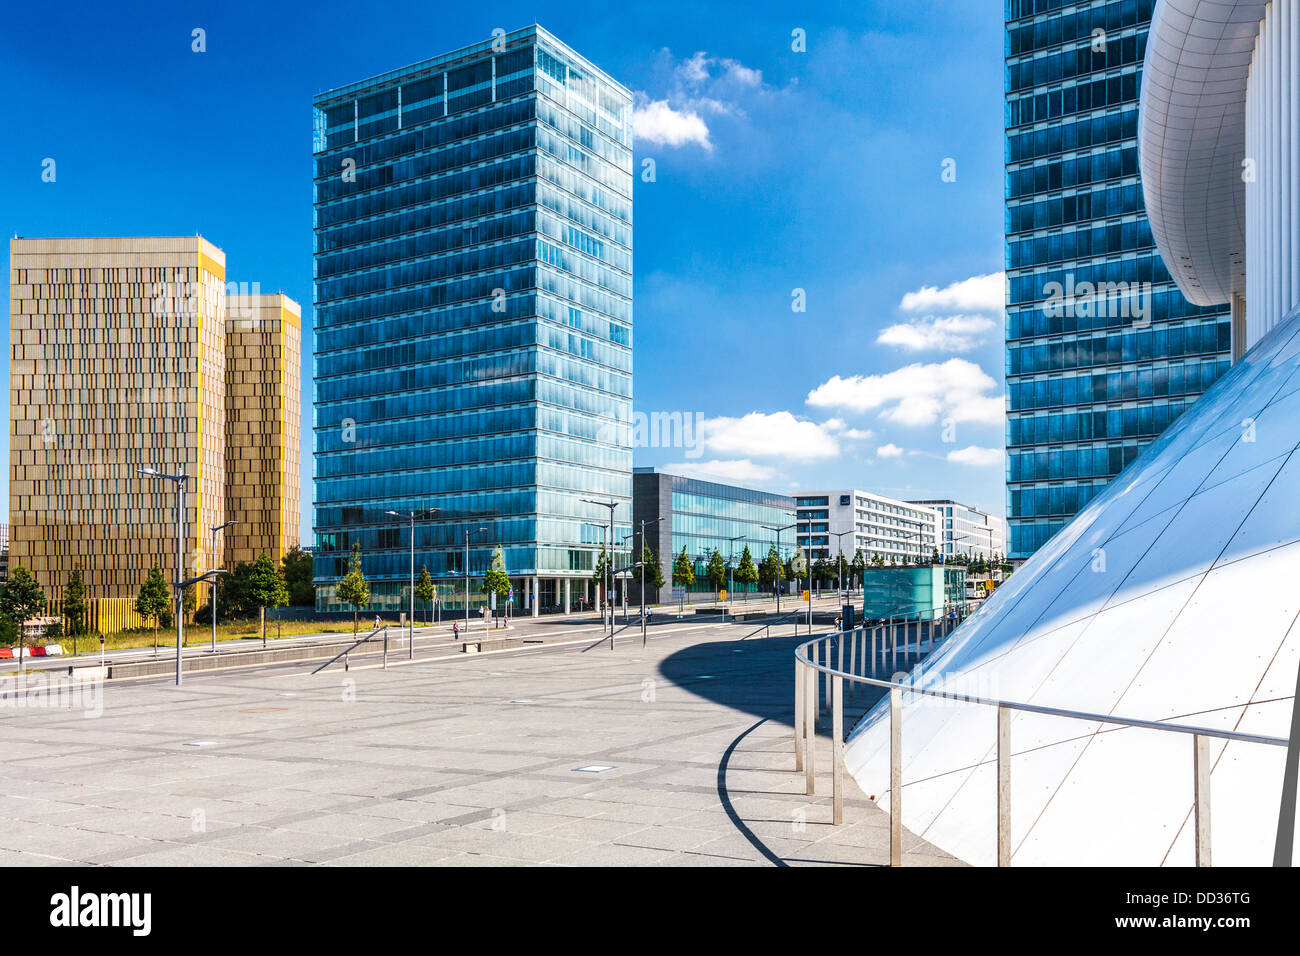 European Court of Justice, European Parliament and part of the Philharmonie concert hall on Kirchberg Plateau, Luxembourg - Stock Image